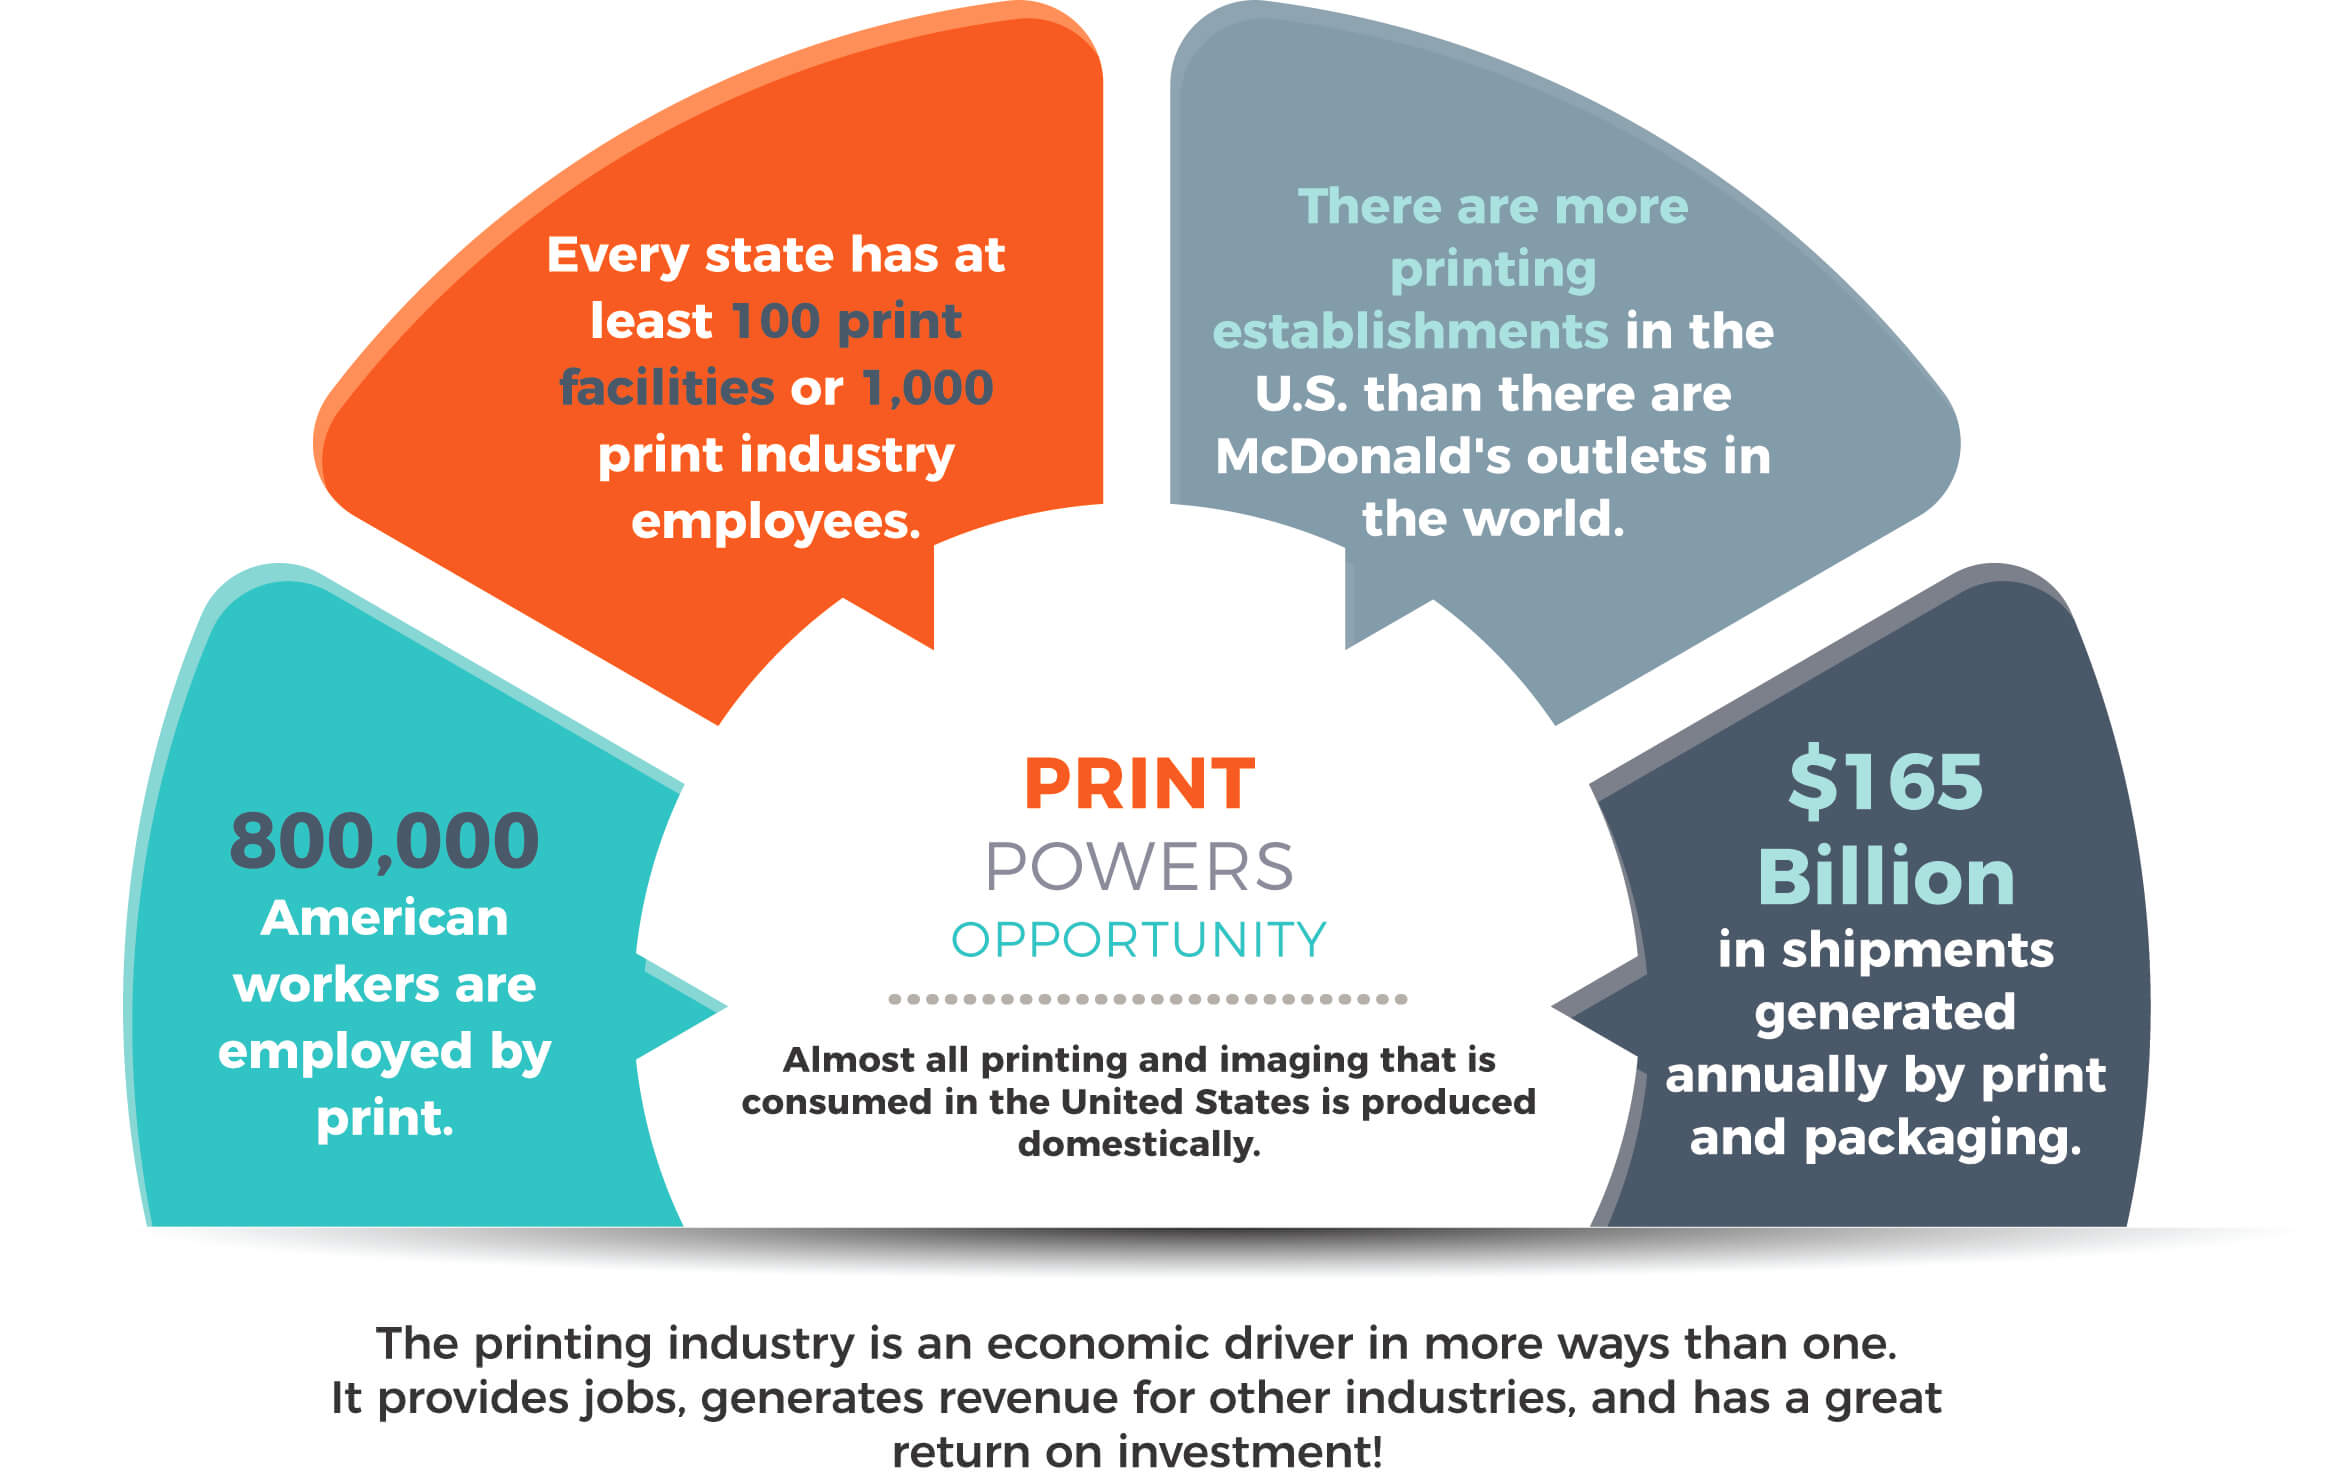 Print Powers Opportunity